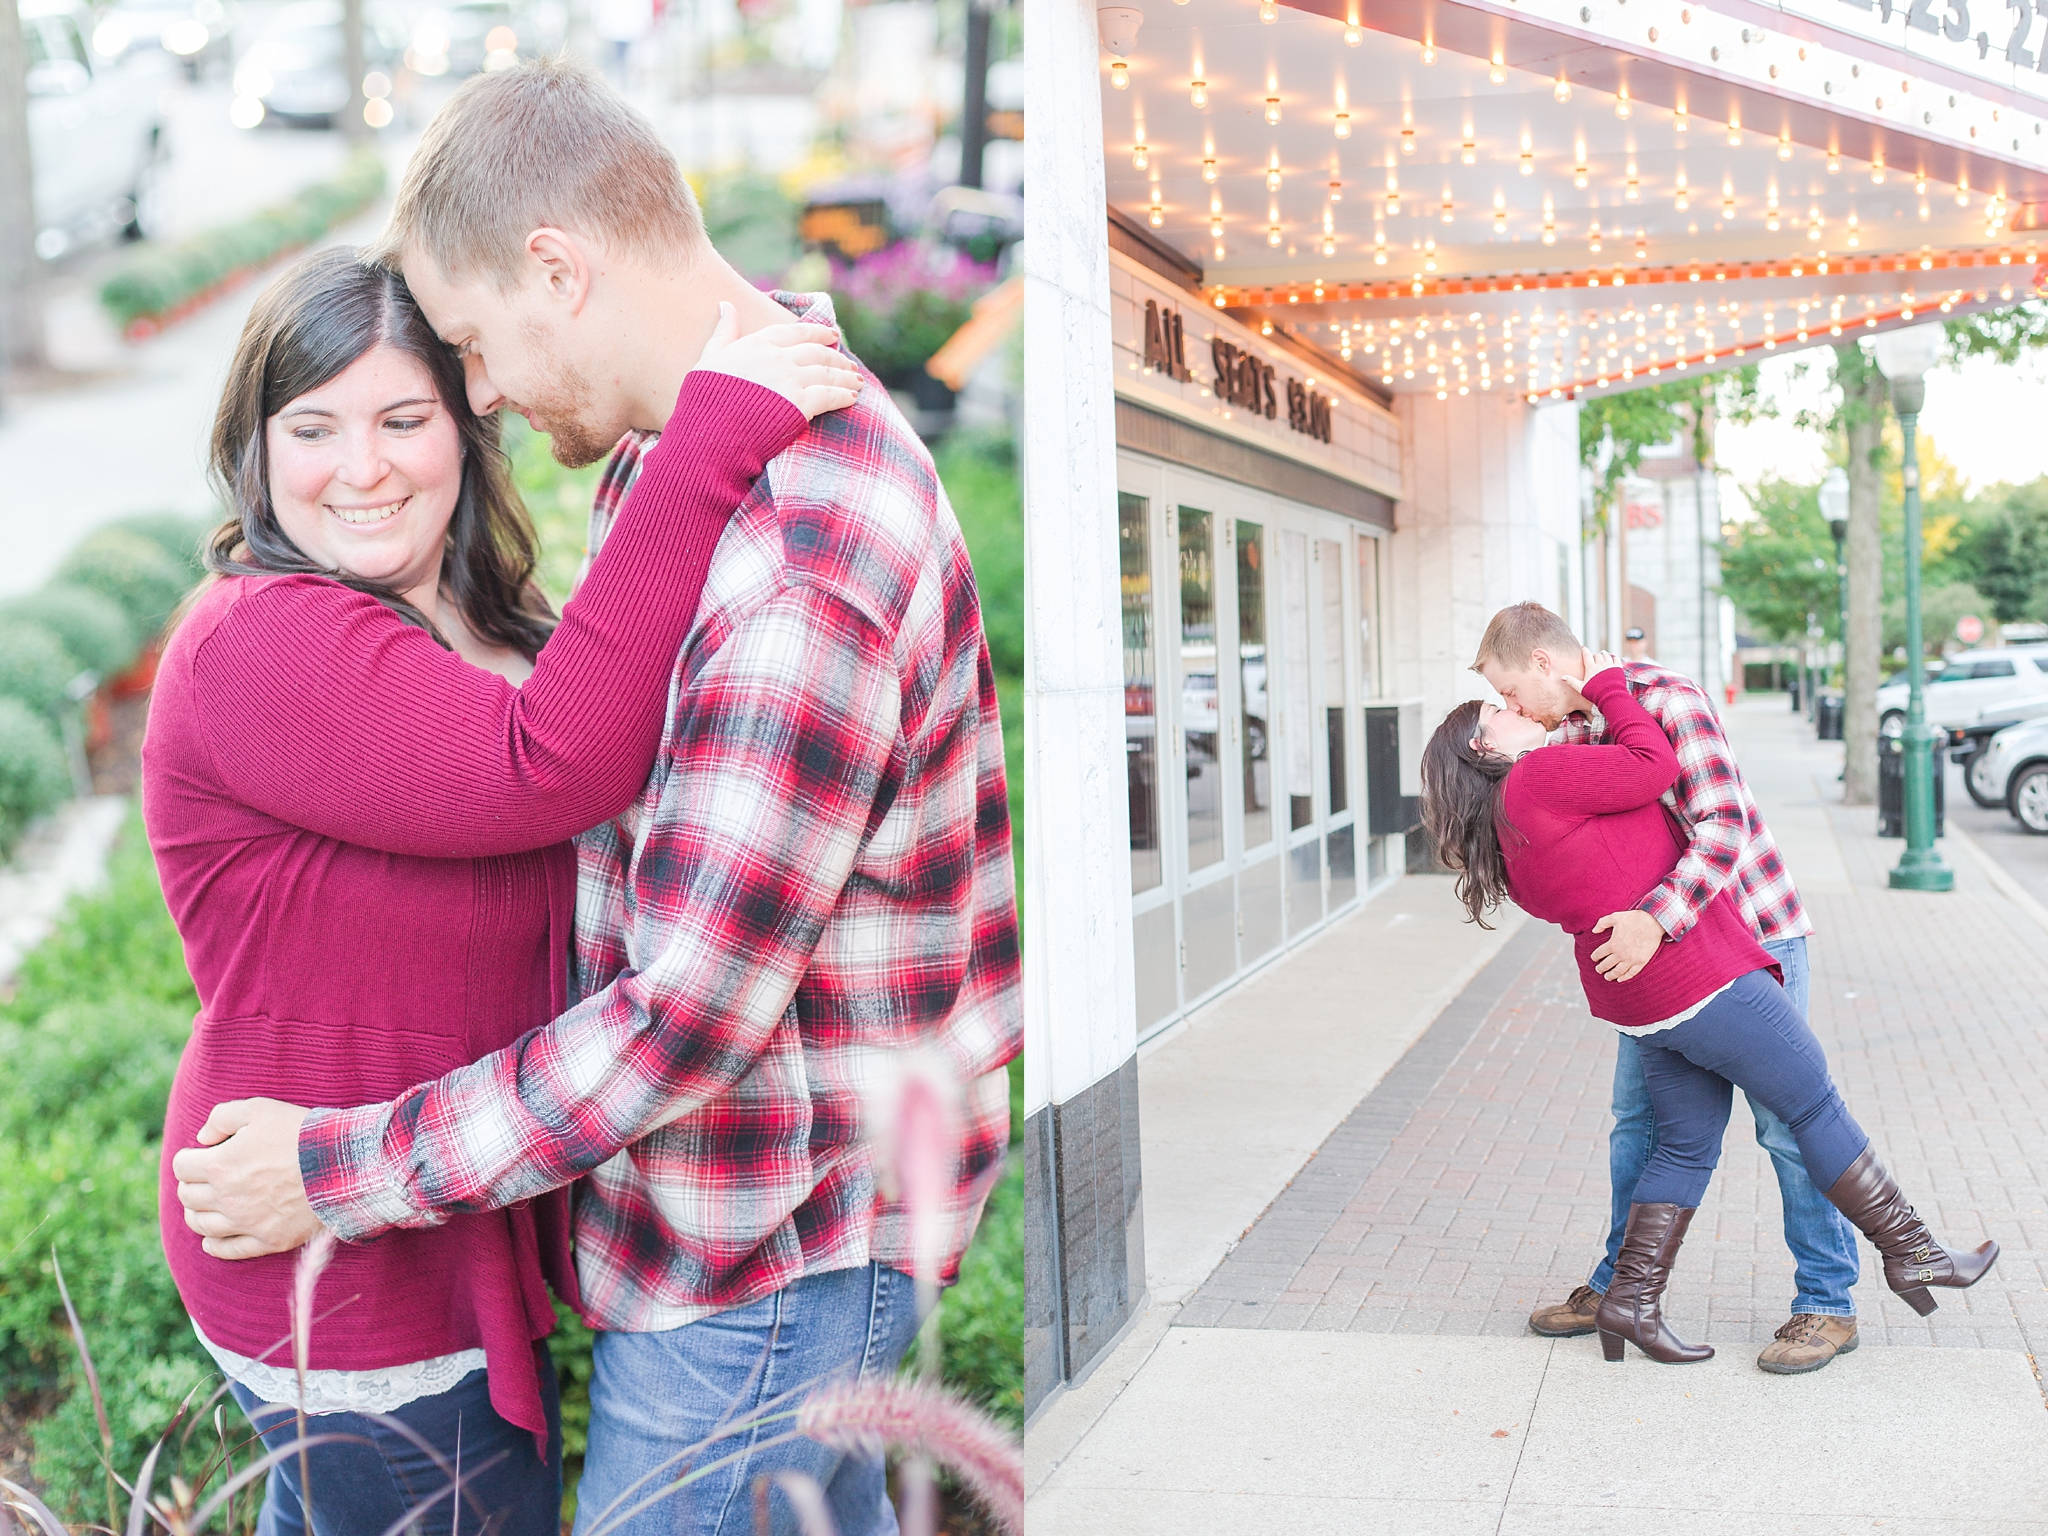 fun-fall-engagement-photos-in-downtown-plymouth-michigan-by-courtney-carolyn-photography_0009.jpg